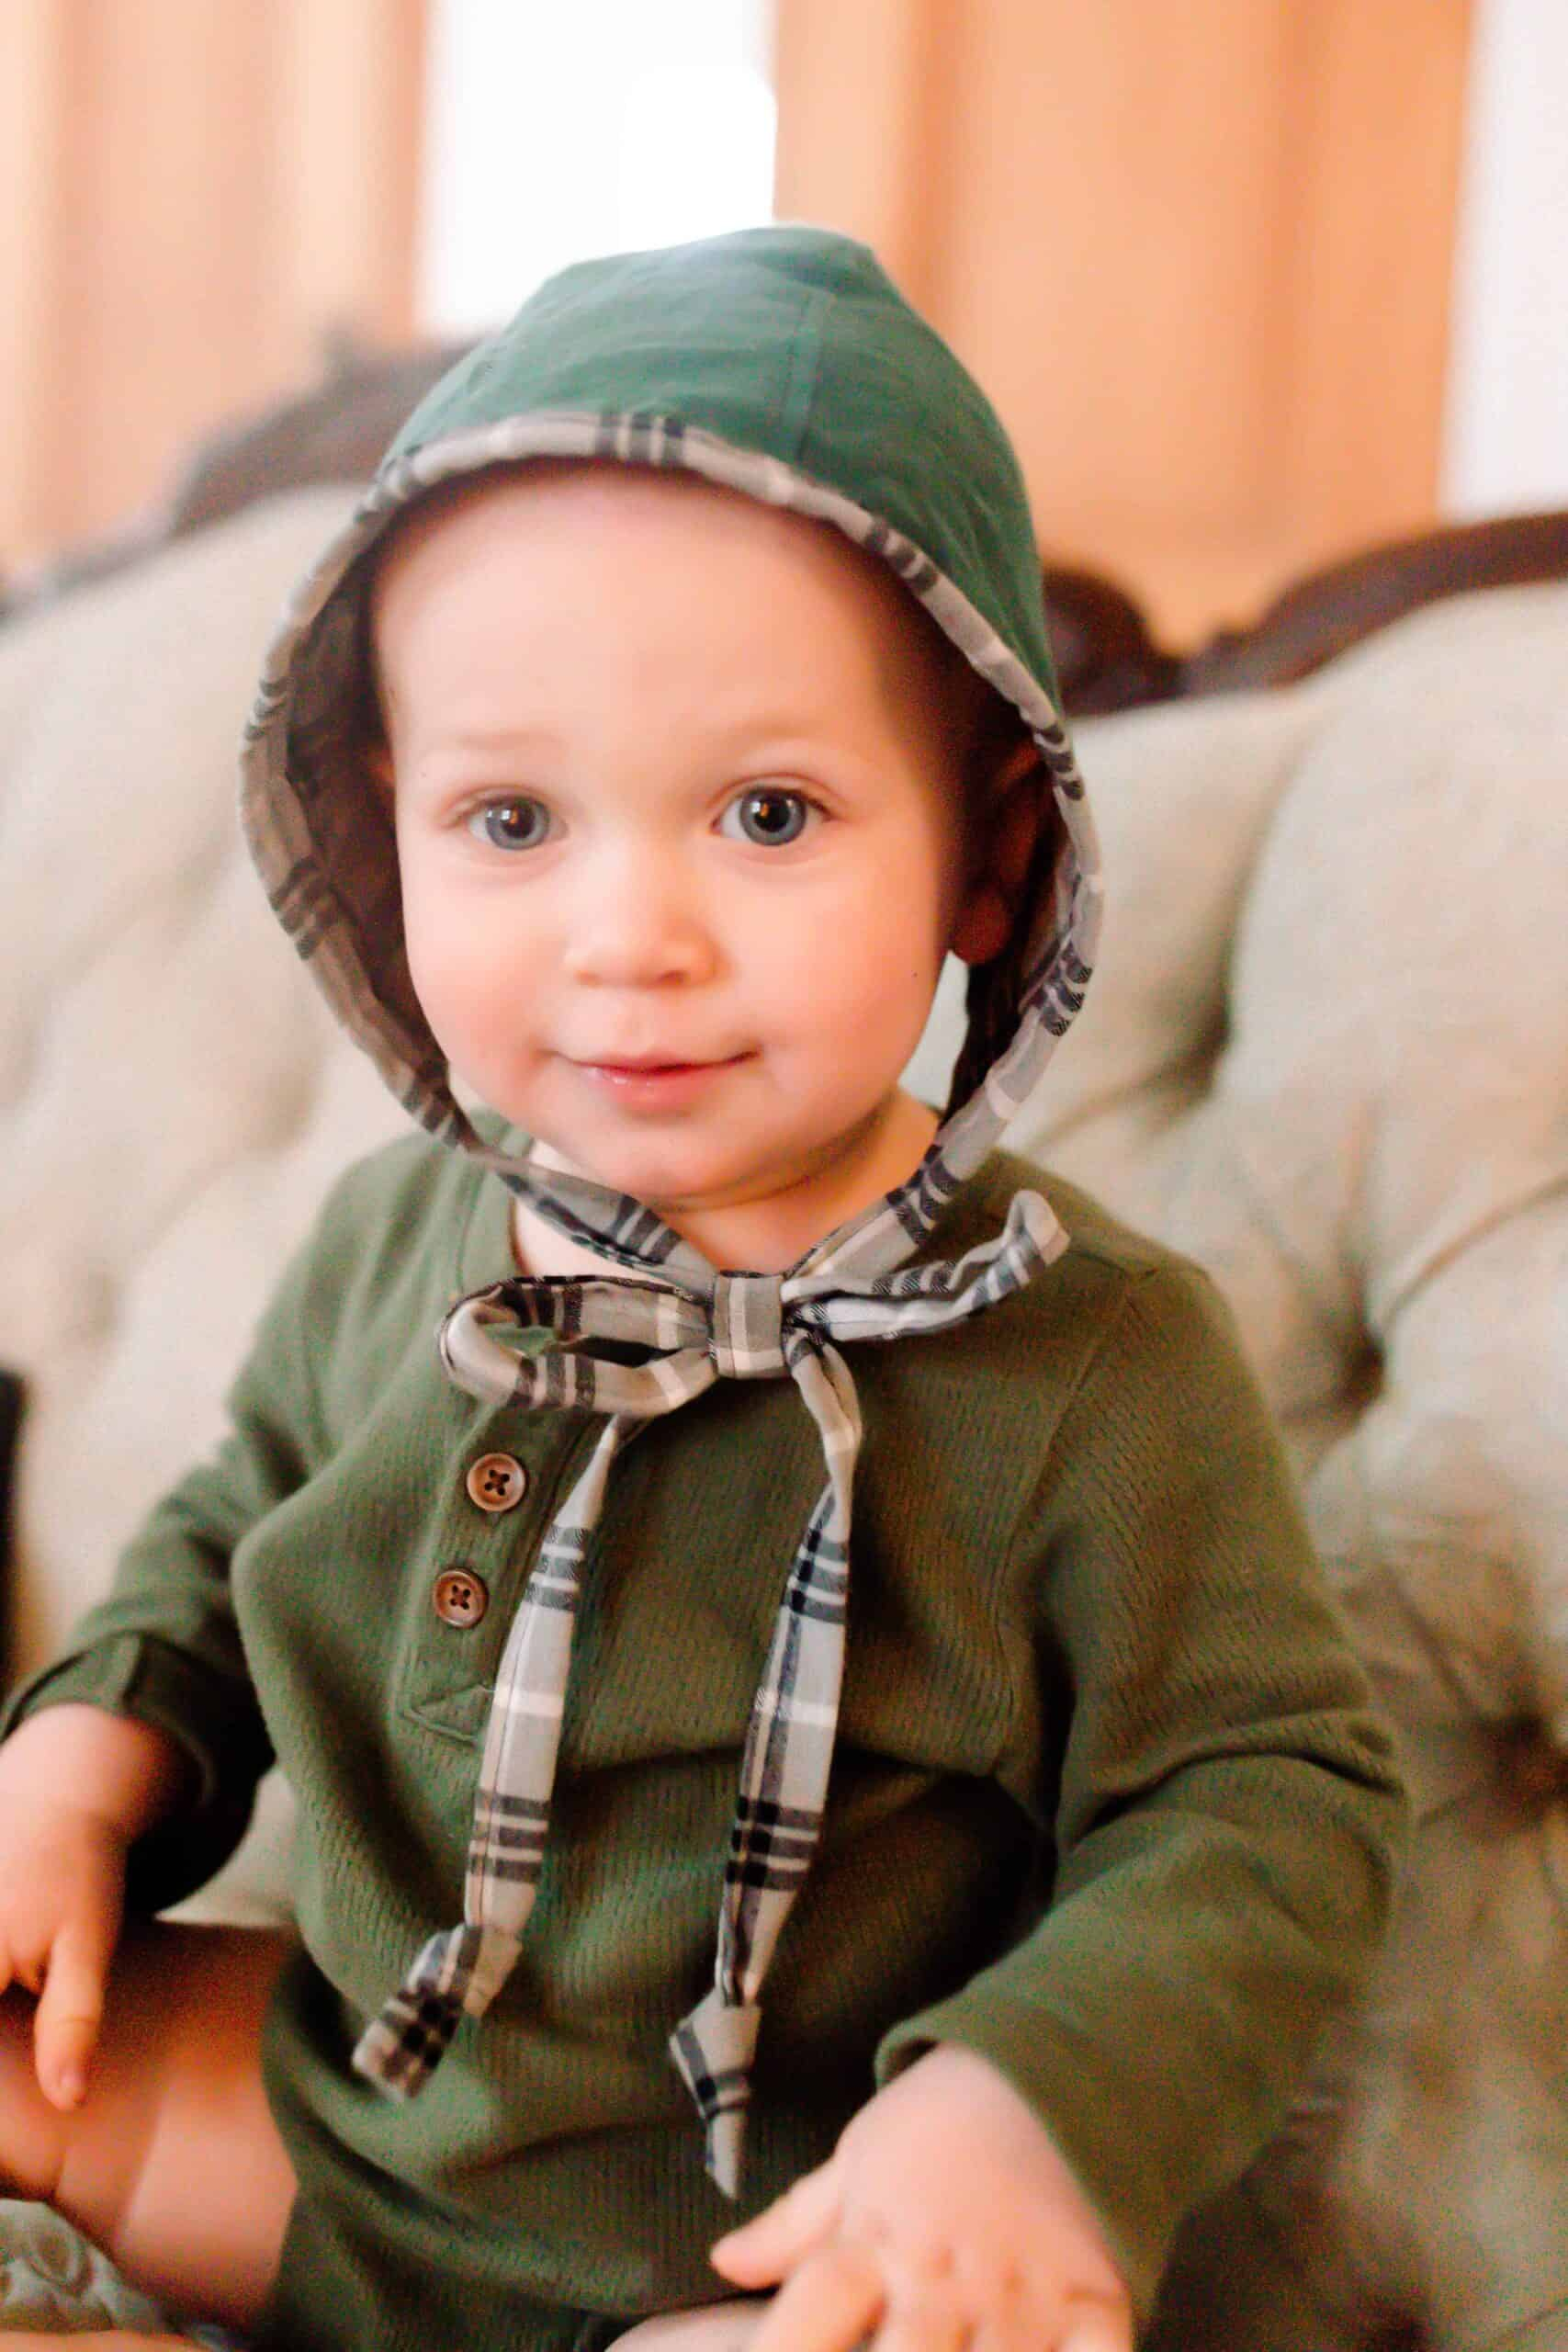 Baby boy in a green shirt wearing a green and plaid homemade bonnet